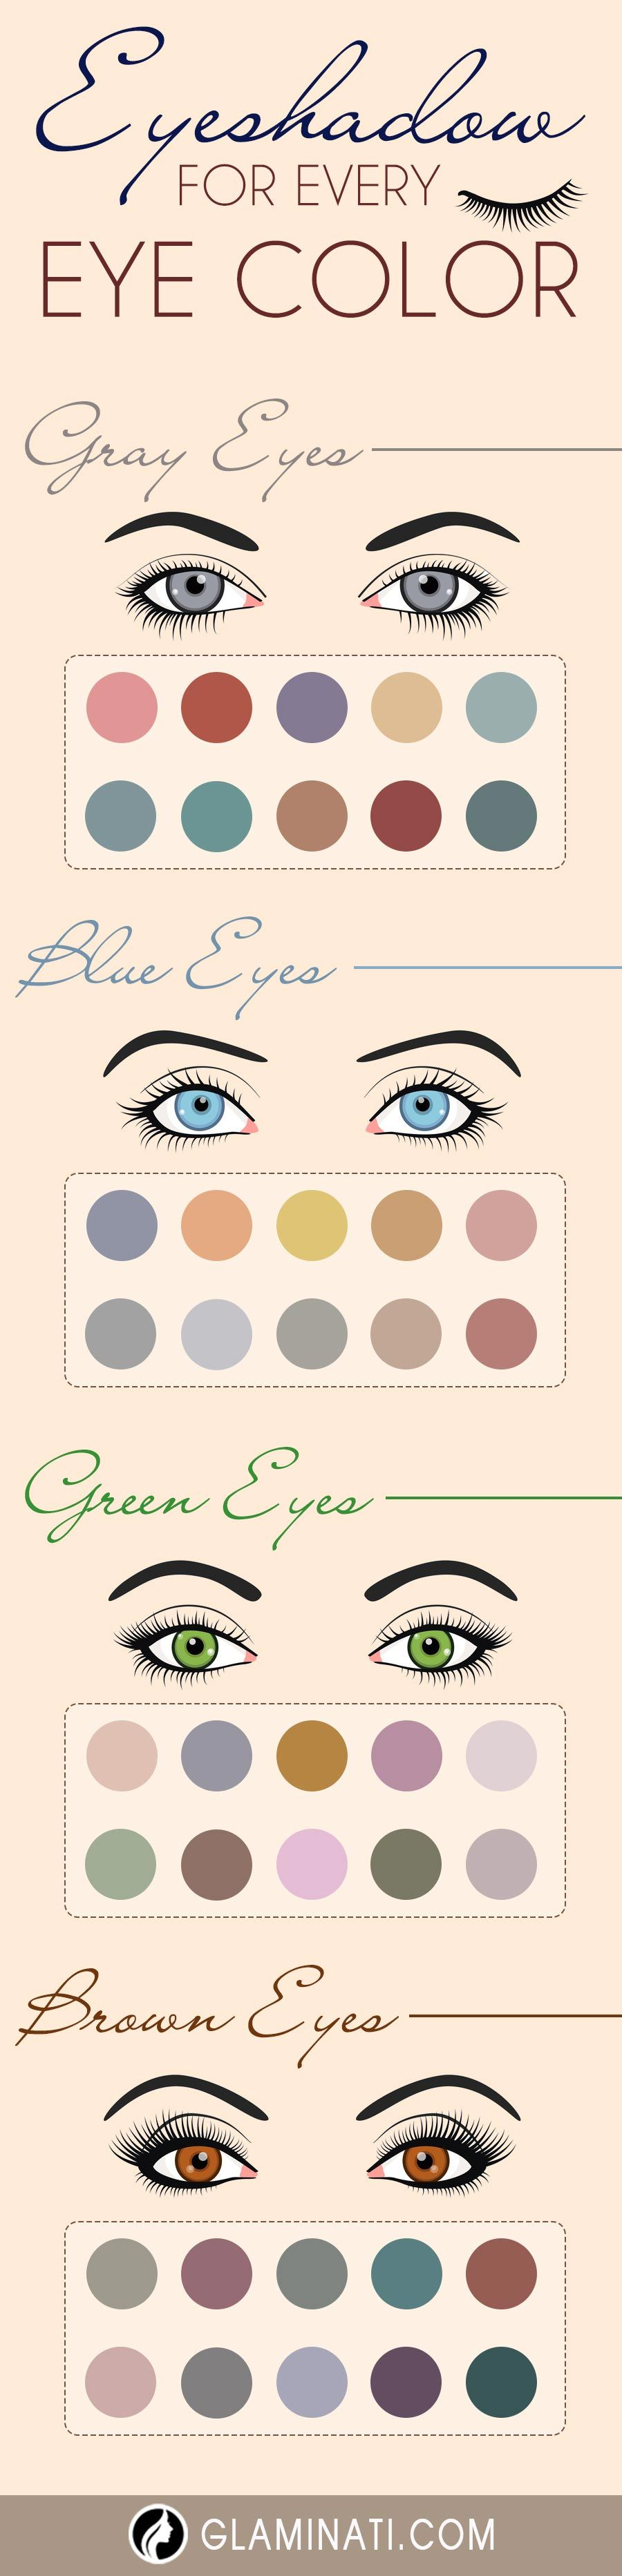 33 most magical makeup ideas for gray eyes   makeup tools